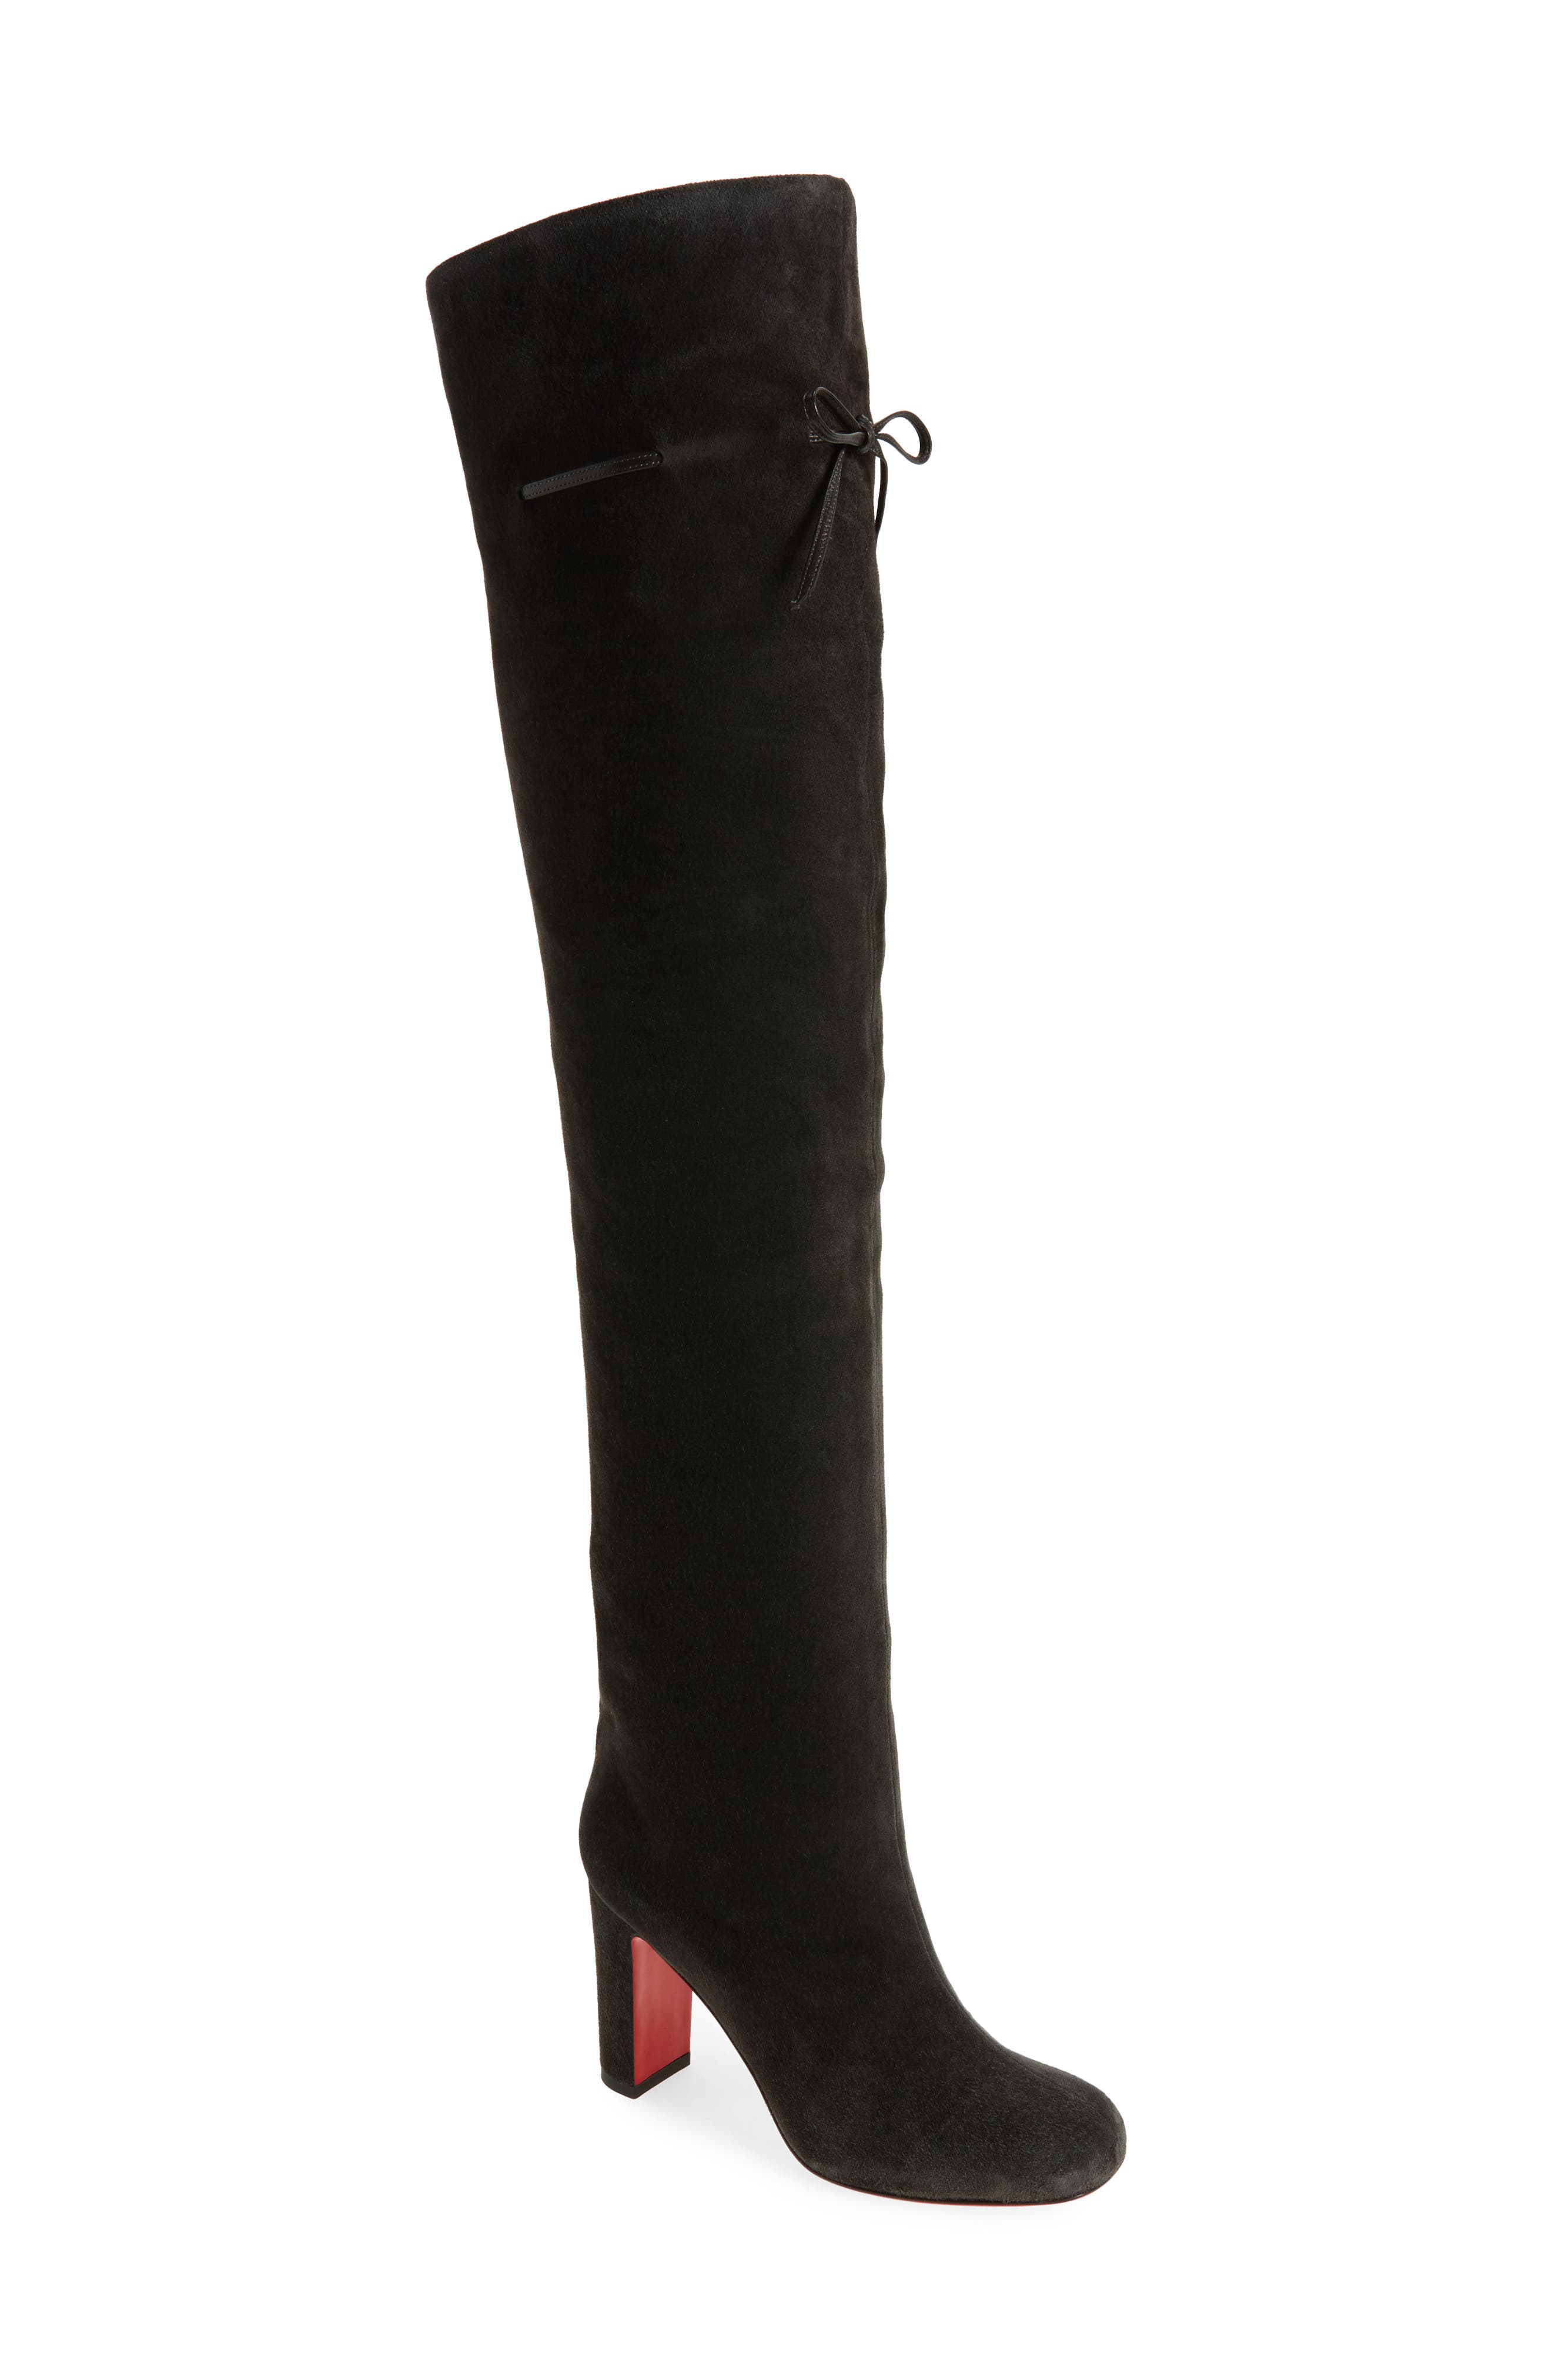 Alta Gant Over the Knee Boot,                             Main thumbnail 1, color,                             Grey Suede